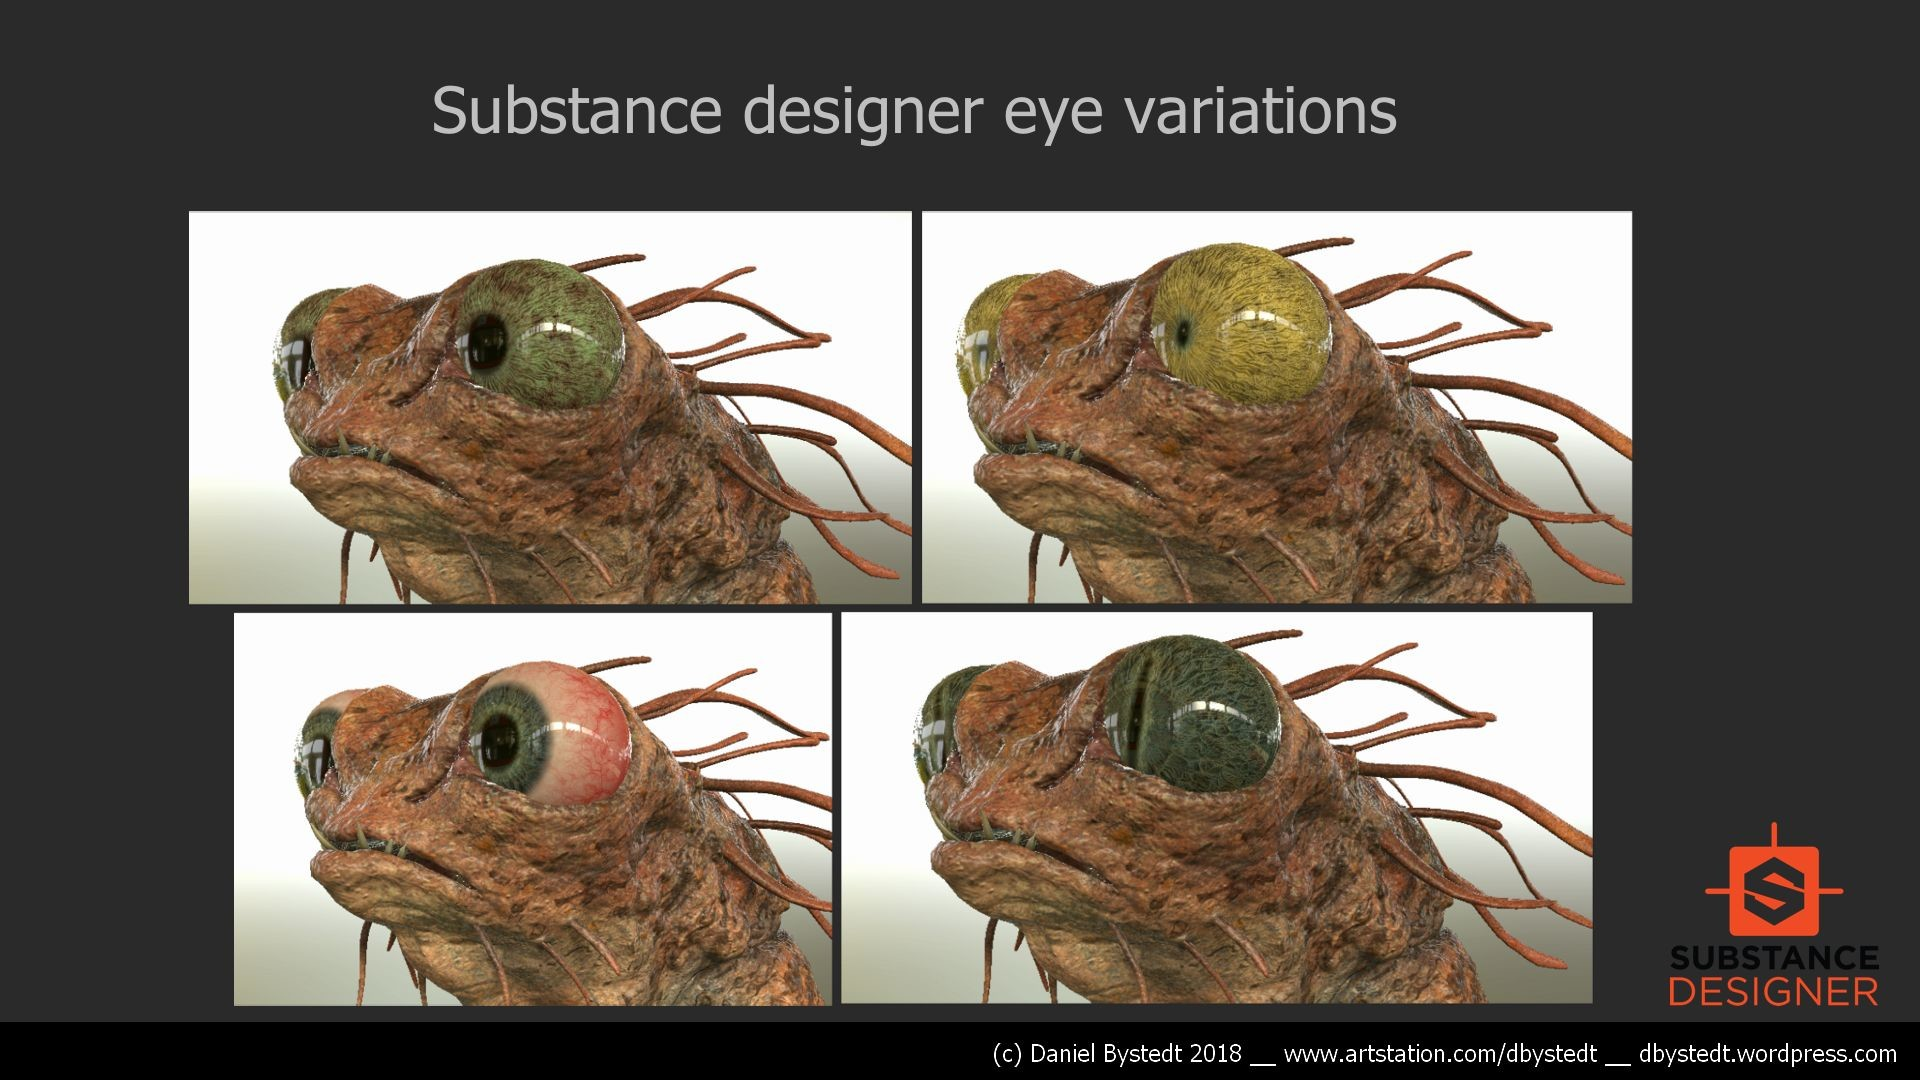 Daniel bystedt treecreature substance designer eye variations